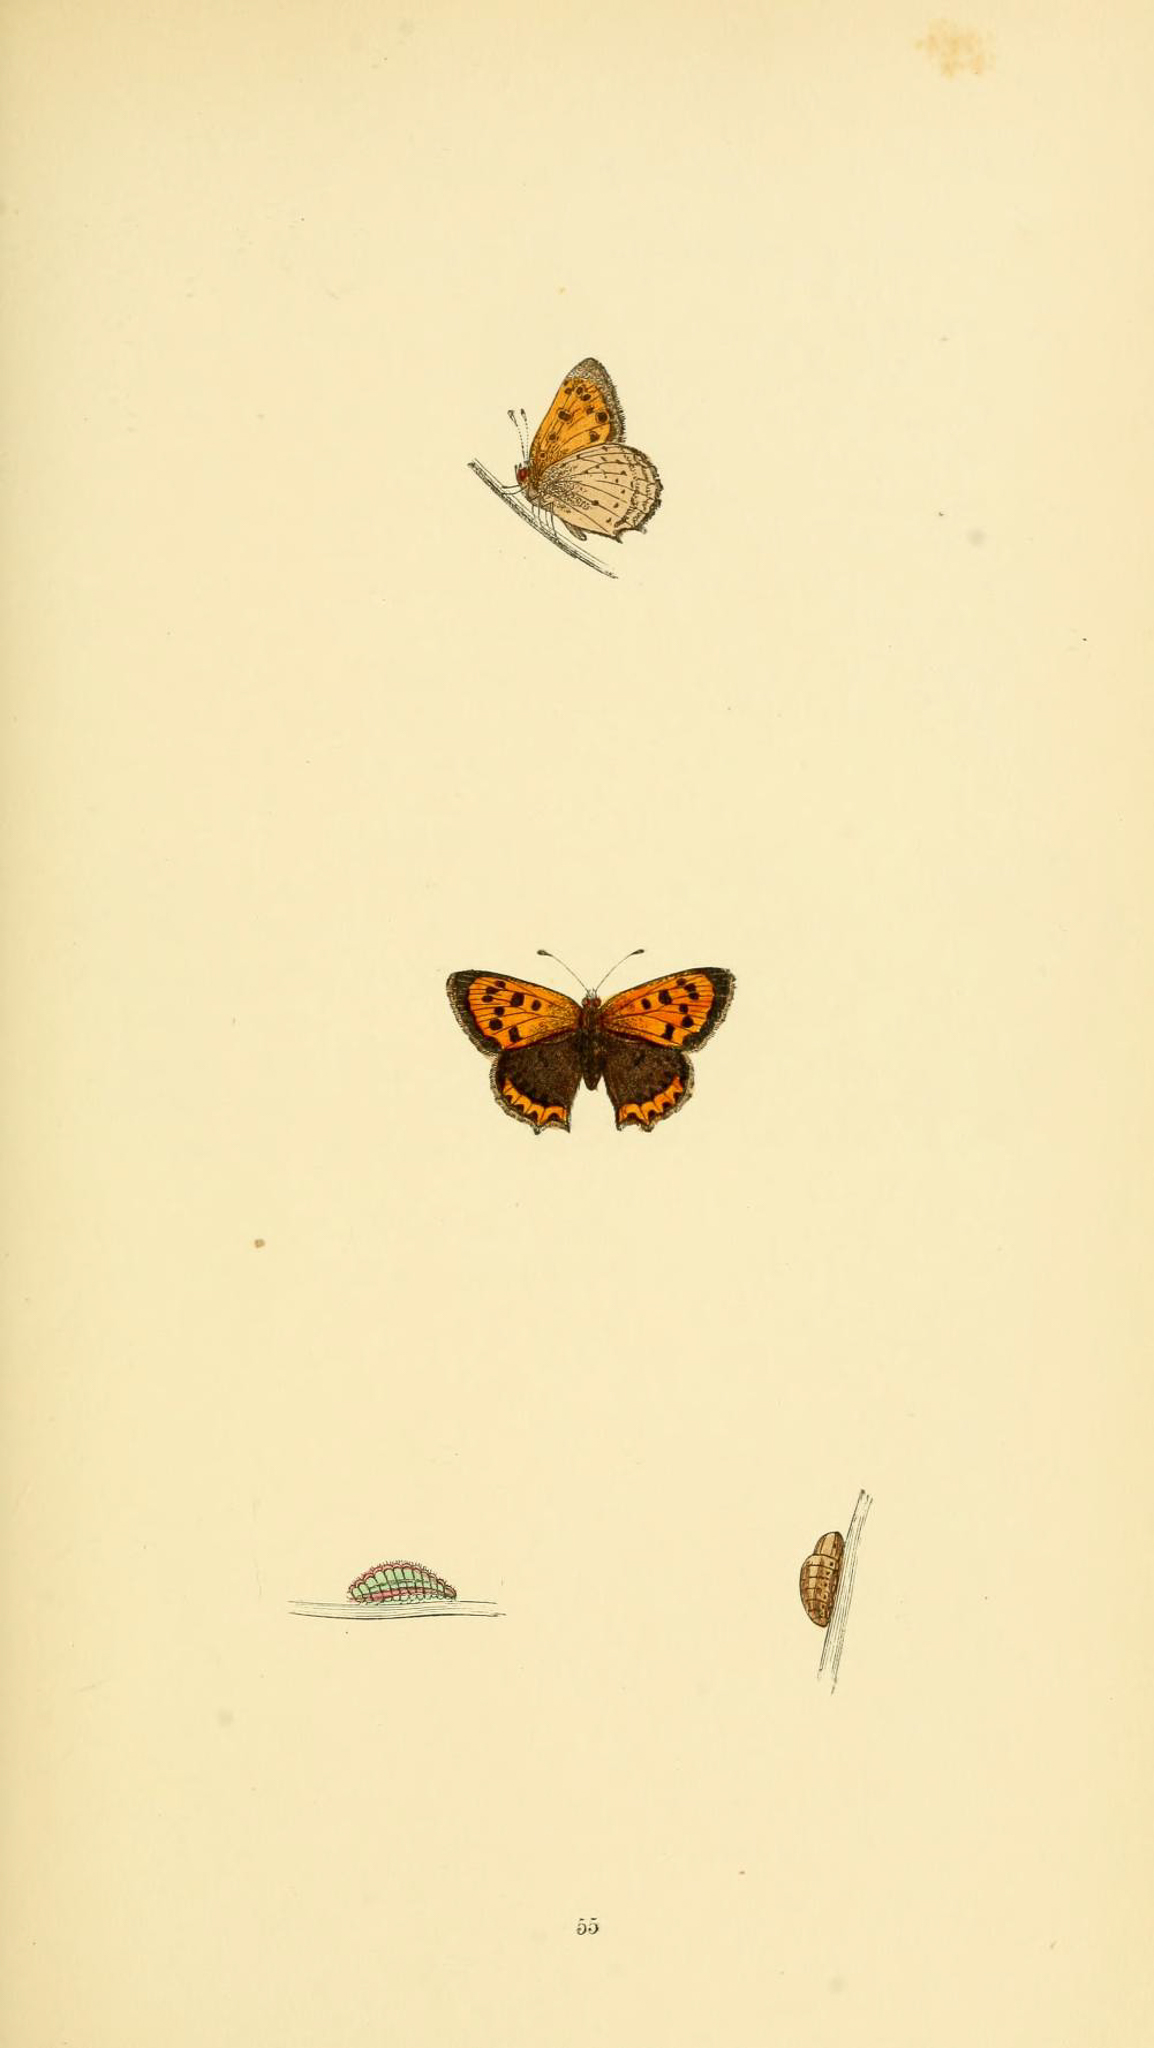 Small Copper Butterfly in Rev F. O. Morris's British Butterflies - The Hall of Einar